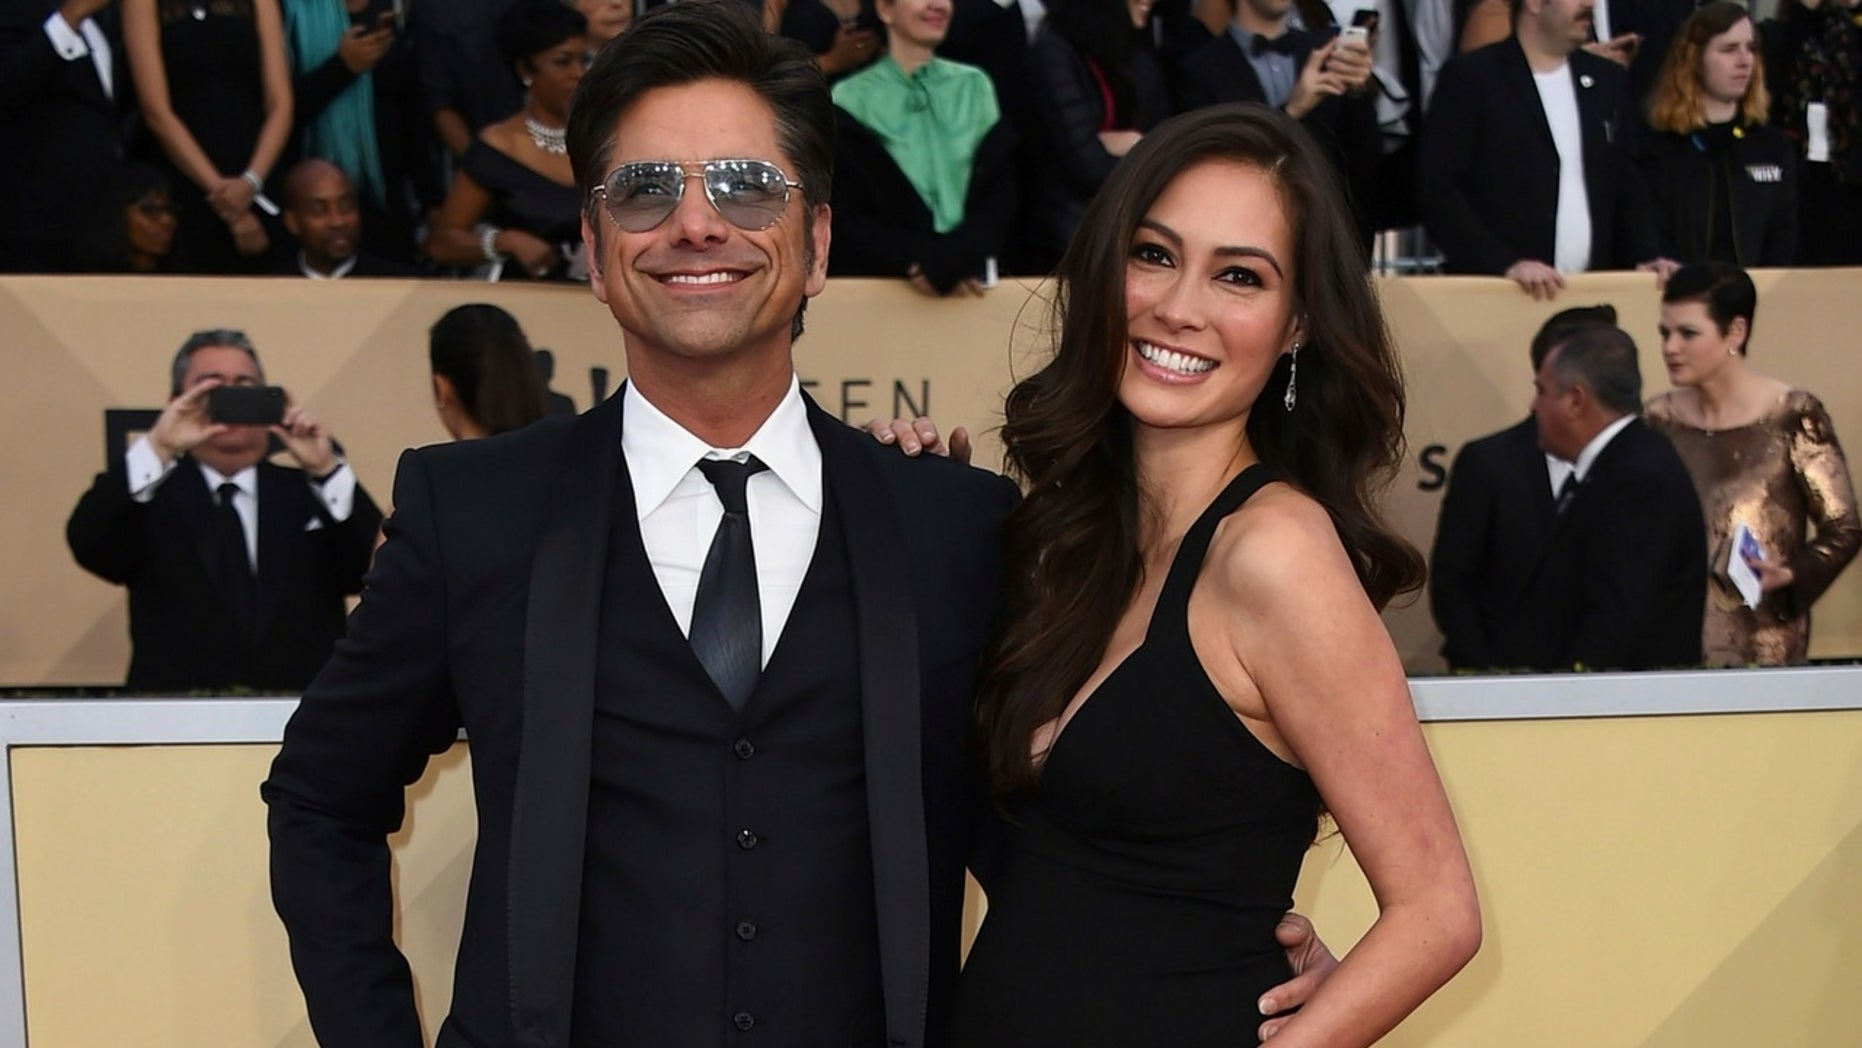 John Stamos's fiancee, Caitlin McHugh, was reportedly robbed just days before their wedding.